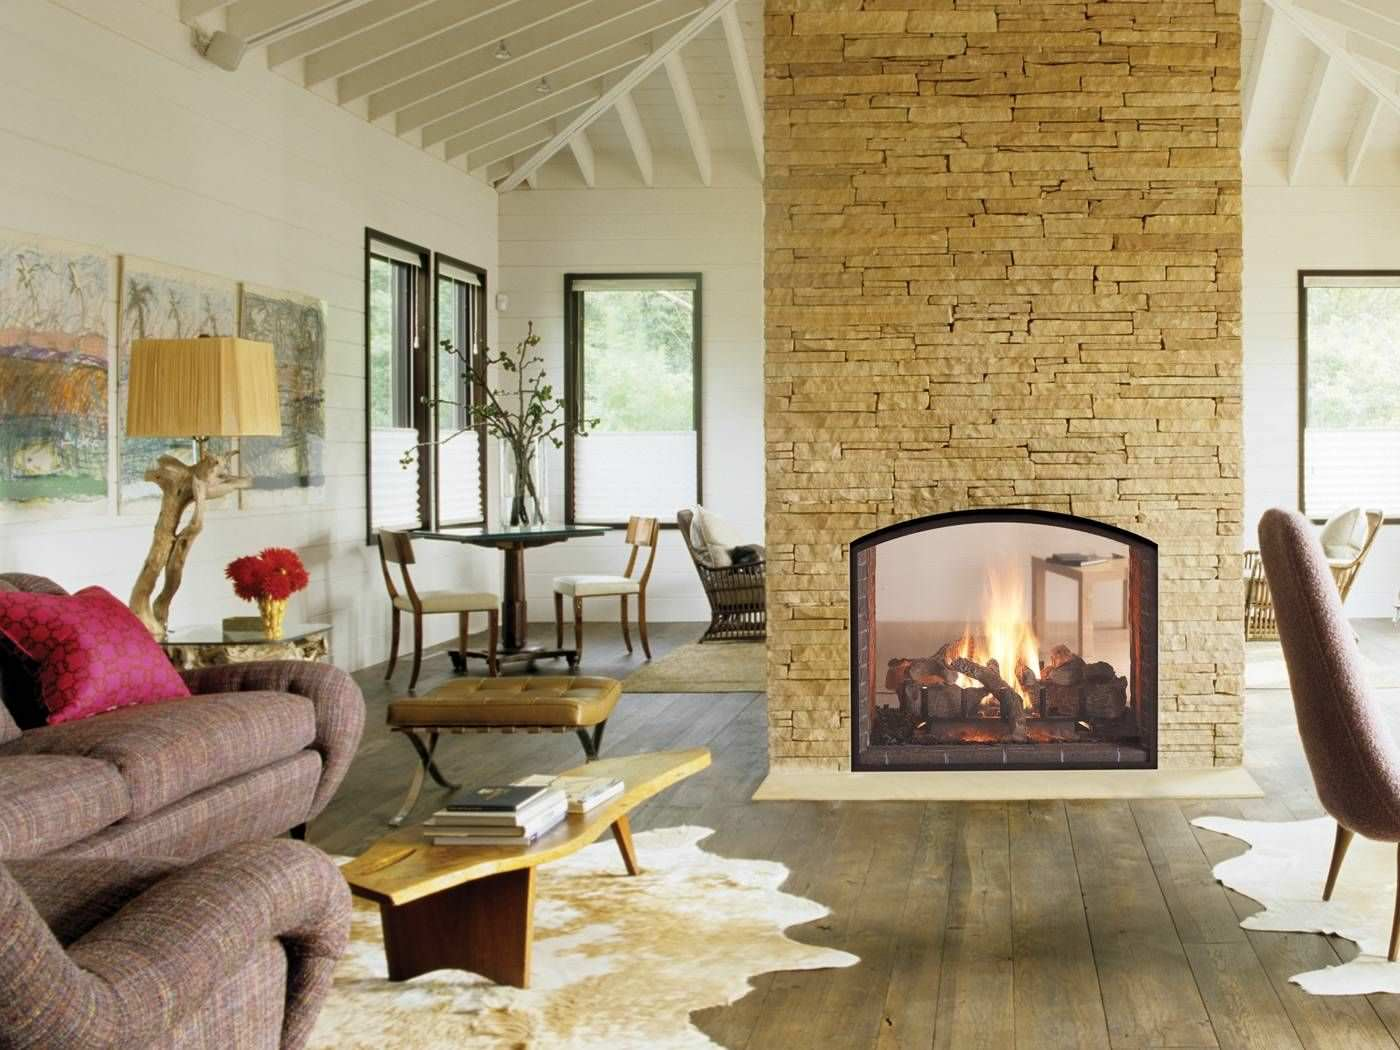 2-Sided Fireplace